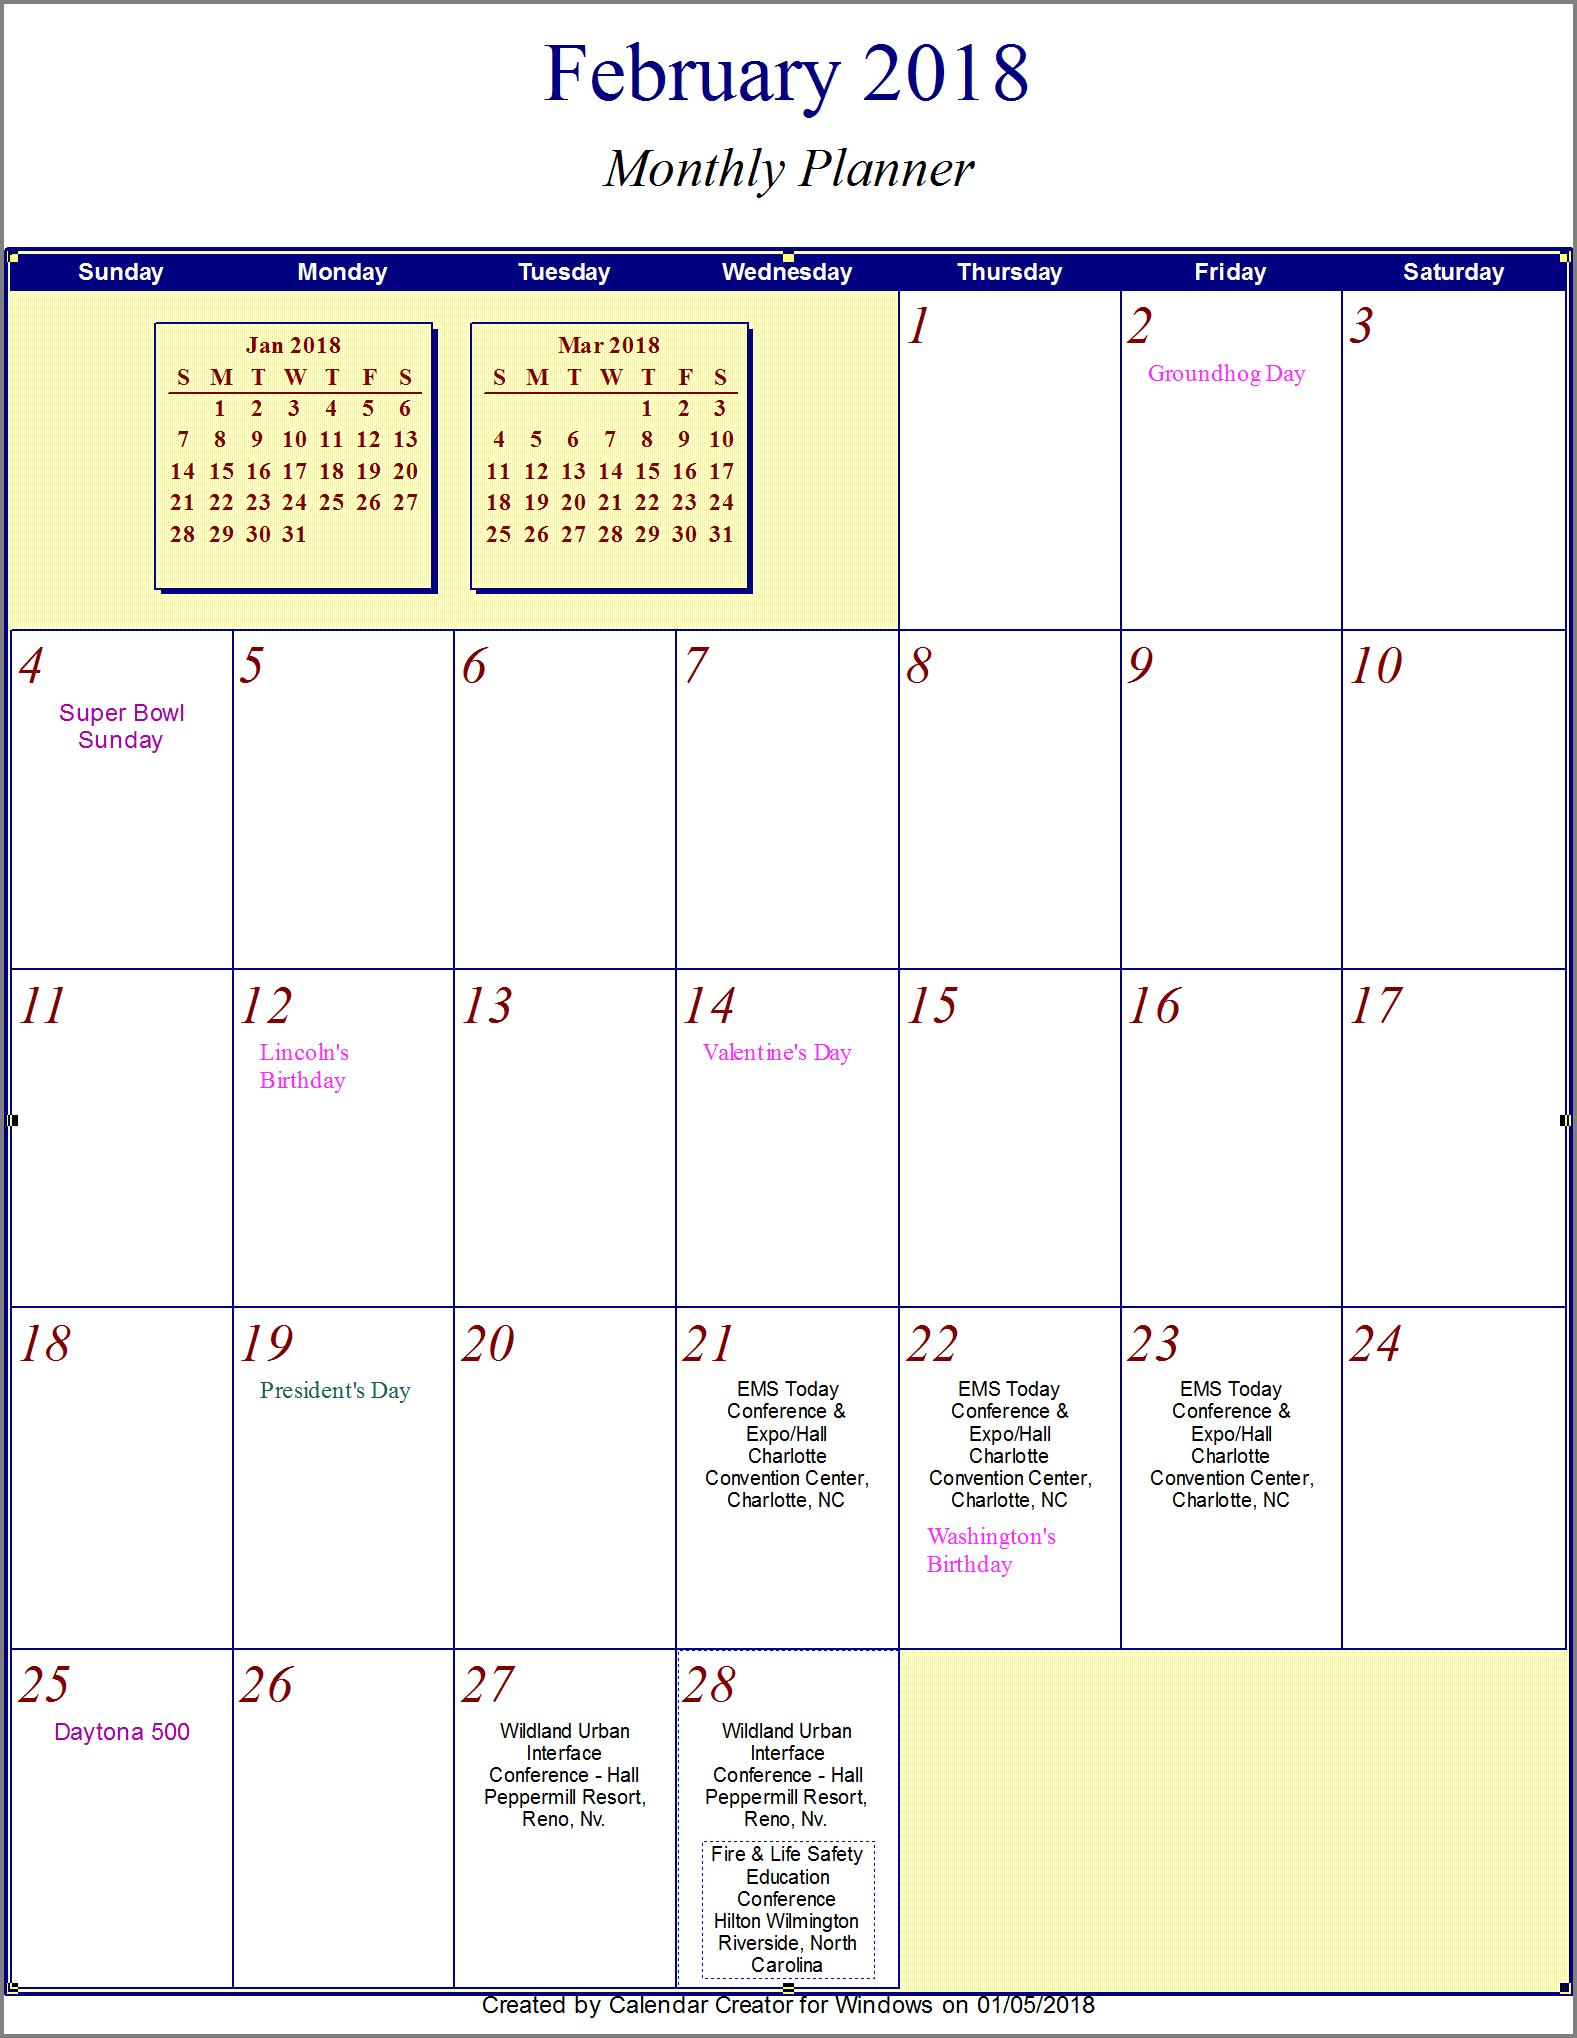 Fall 2017 Academic Calendar - City College of New York